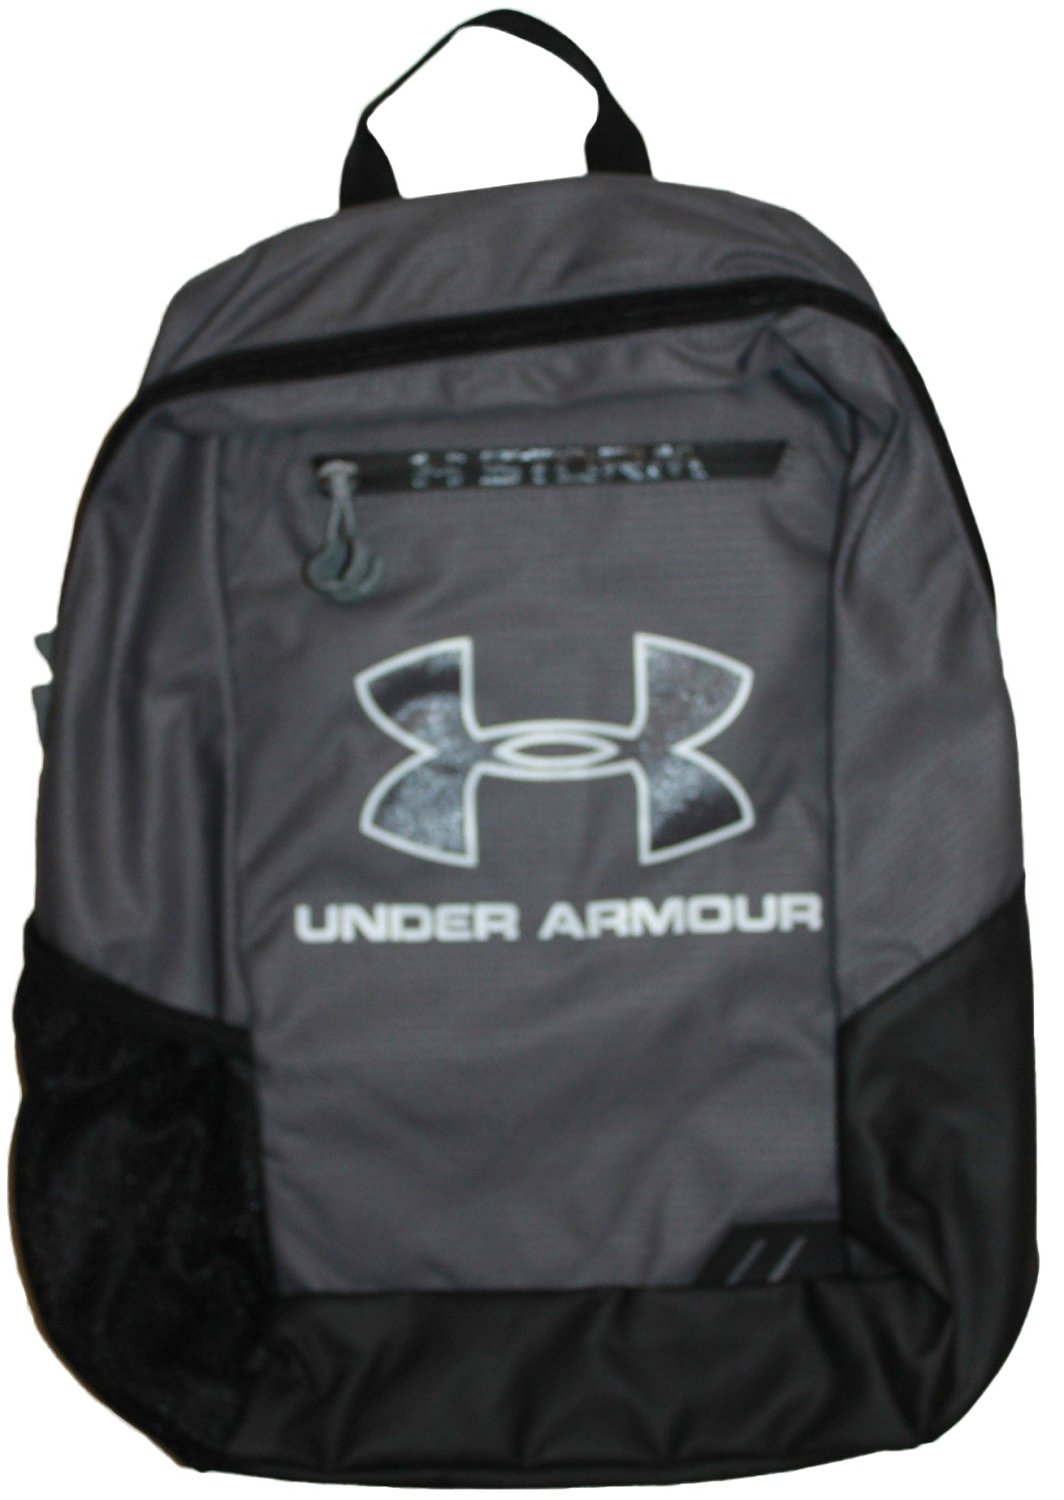 f3ec4f5e6d Get Quotations · Under Armour Unisex Maniac Backpack